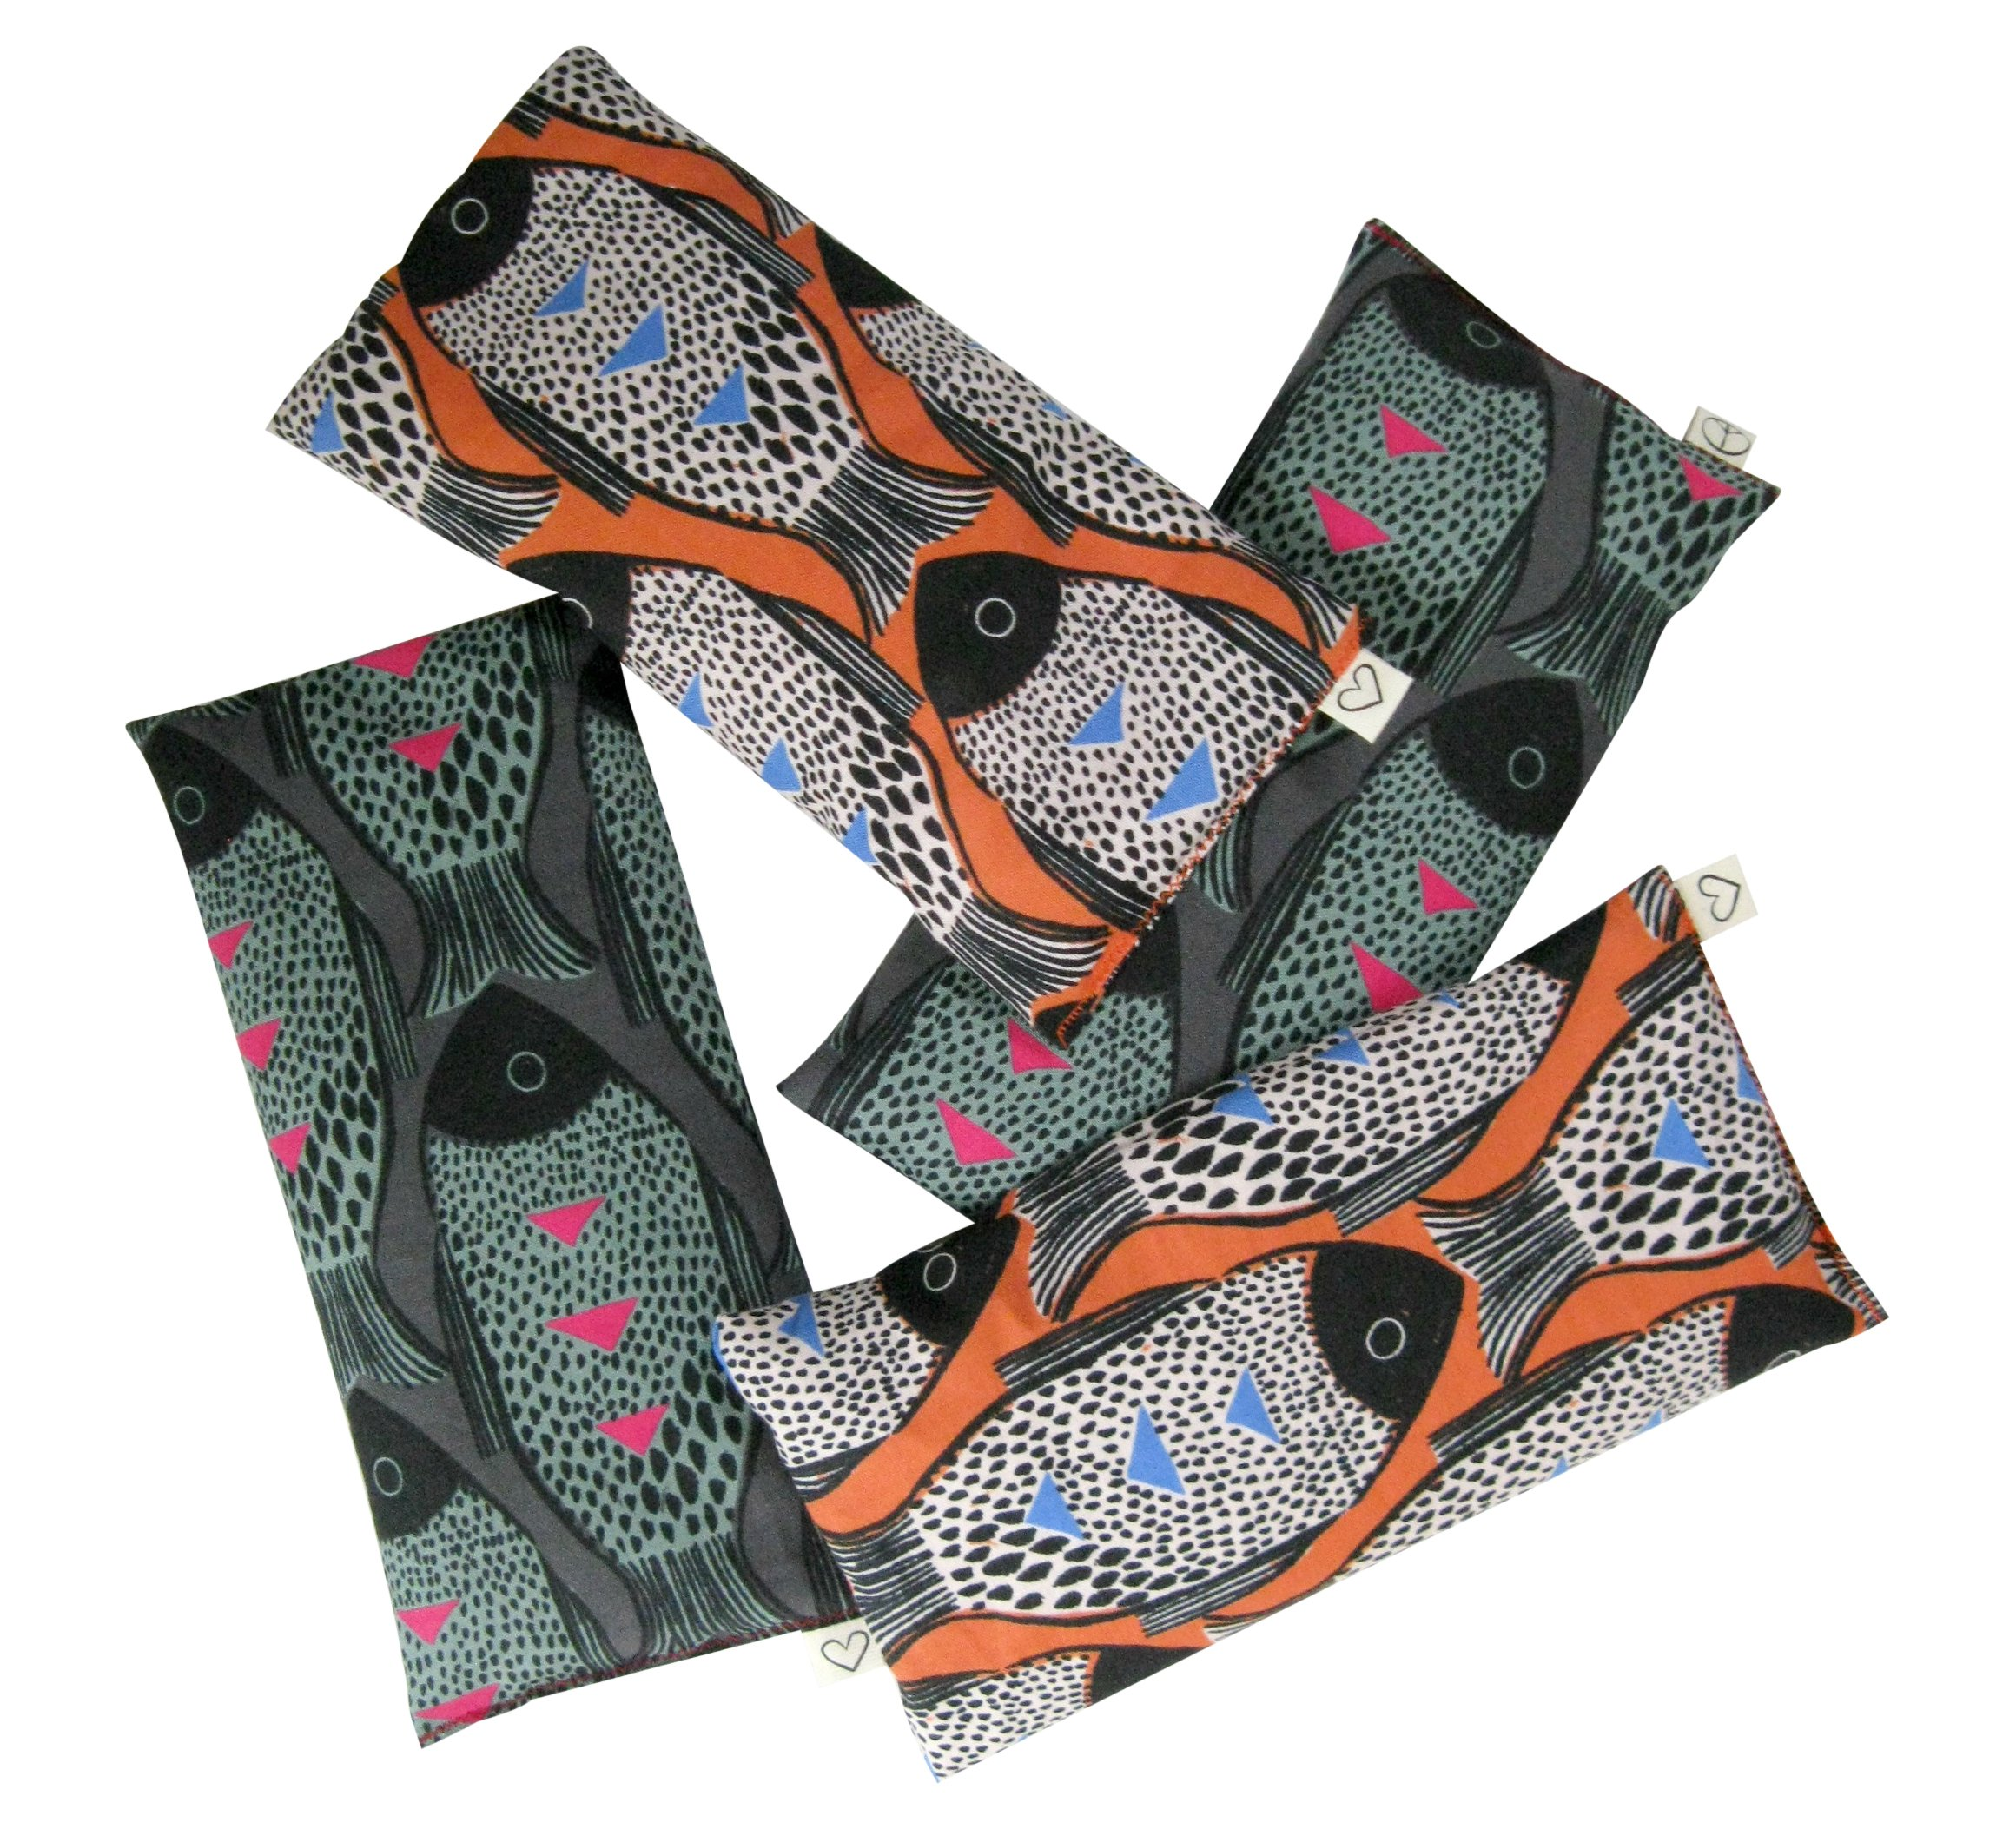 Peacegoods Lavender Eye Pillow Pack of (4) - Soft Cotton 4 x 8.5 - Naturally Soothing - Black Teal Orange Modern Fish